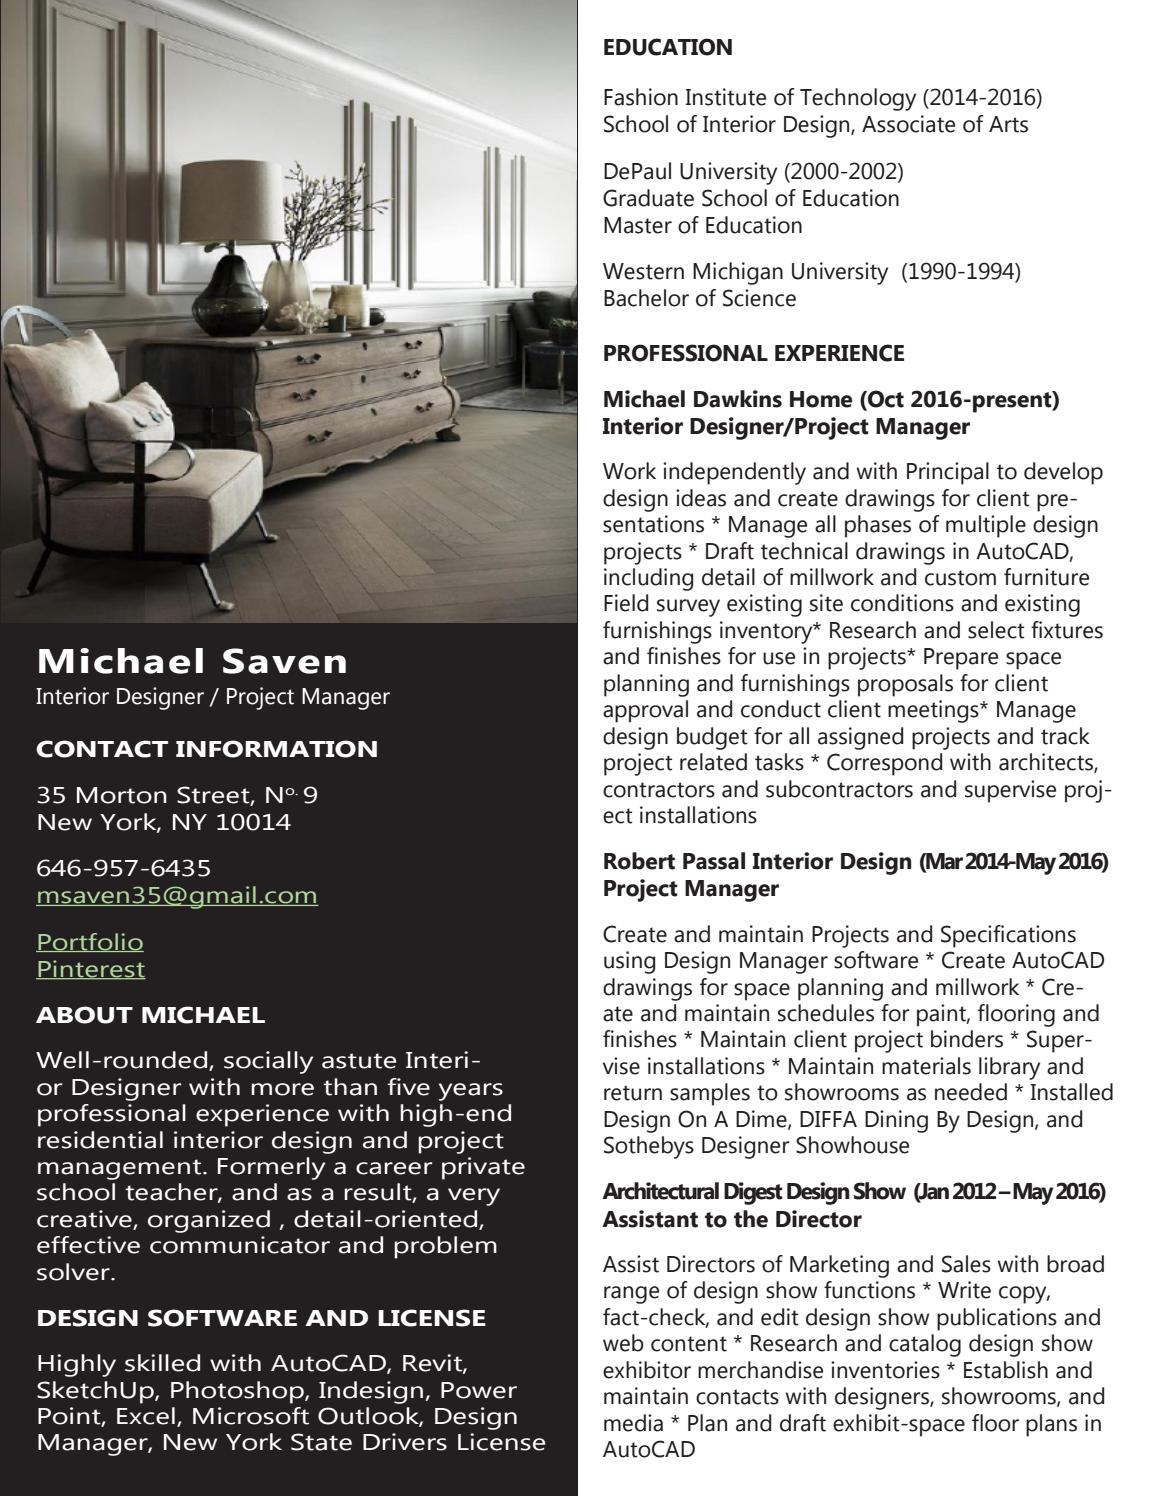 Resume Michael Saven By